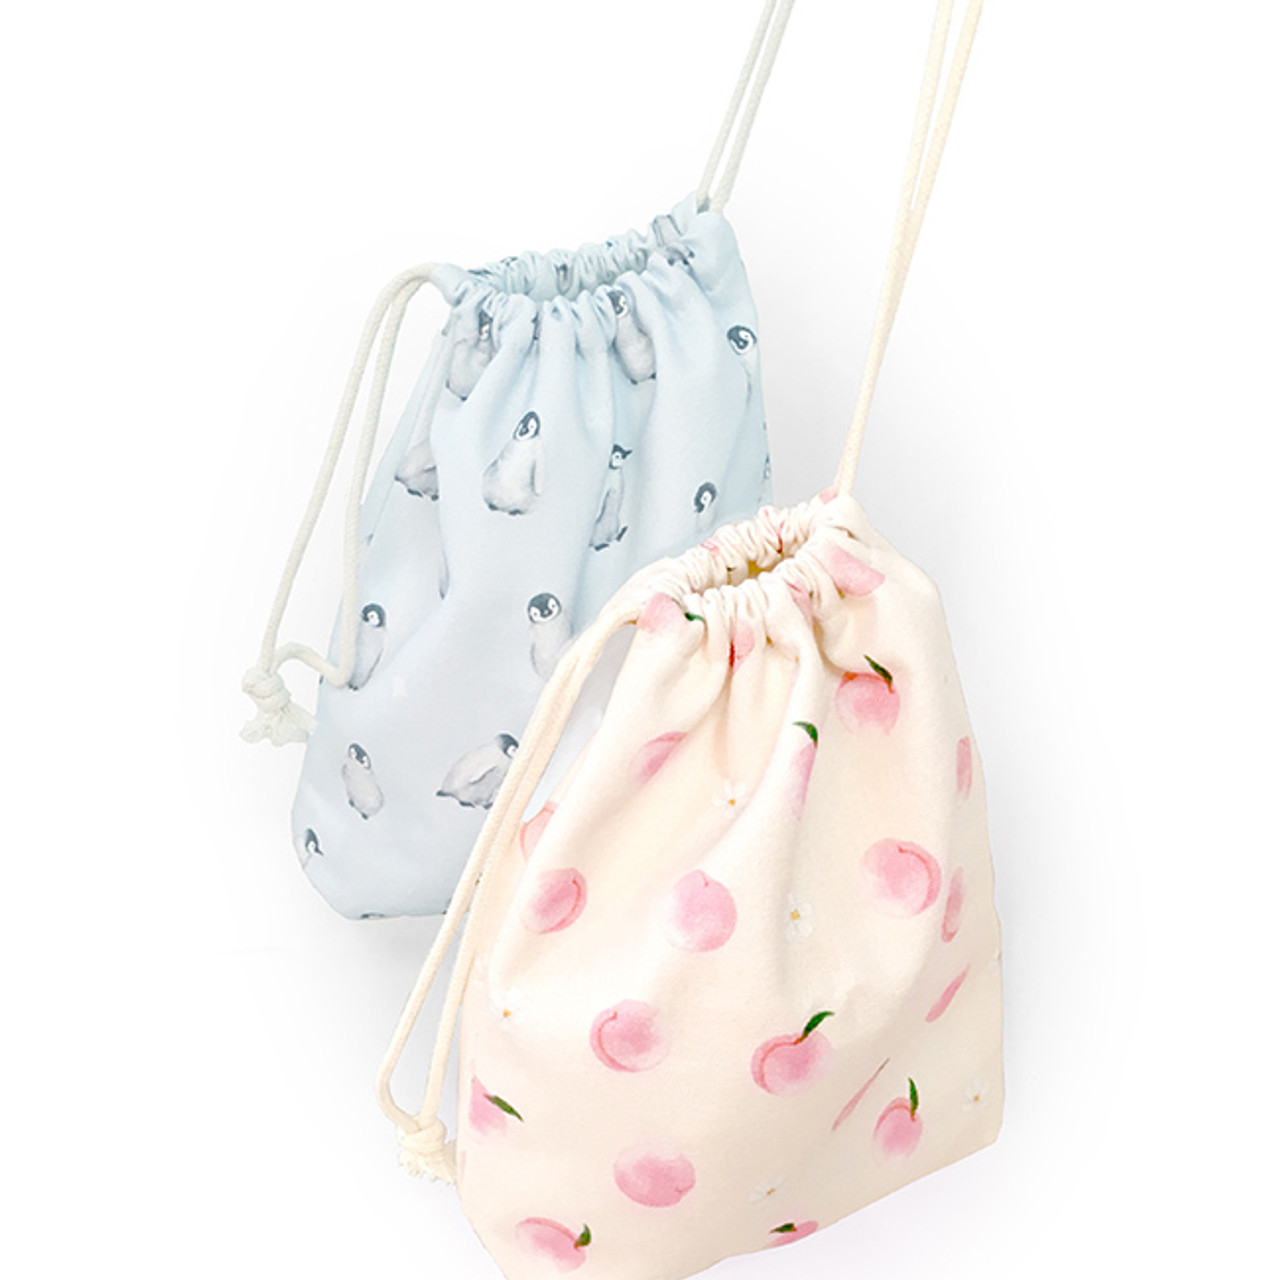 Ocheck Pattern Large Cotton Drawstring Pouch Fallindesign Simple Drawstring Bag Pattern